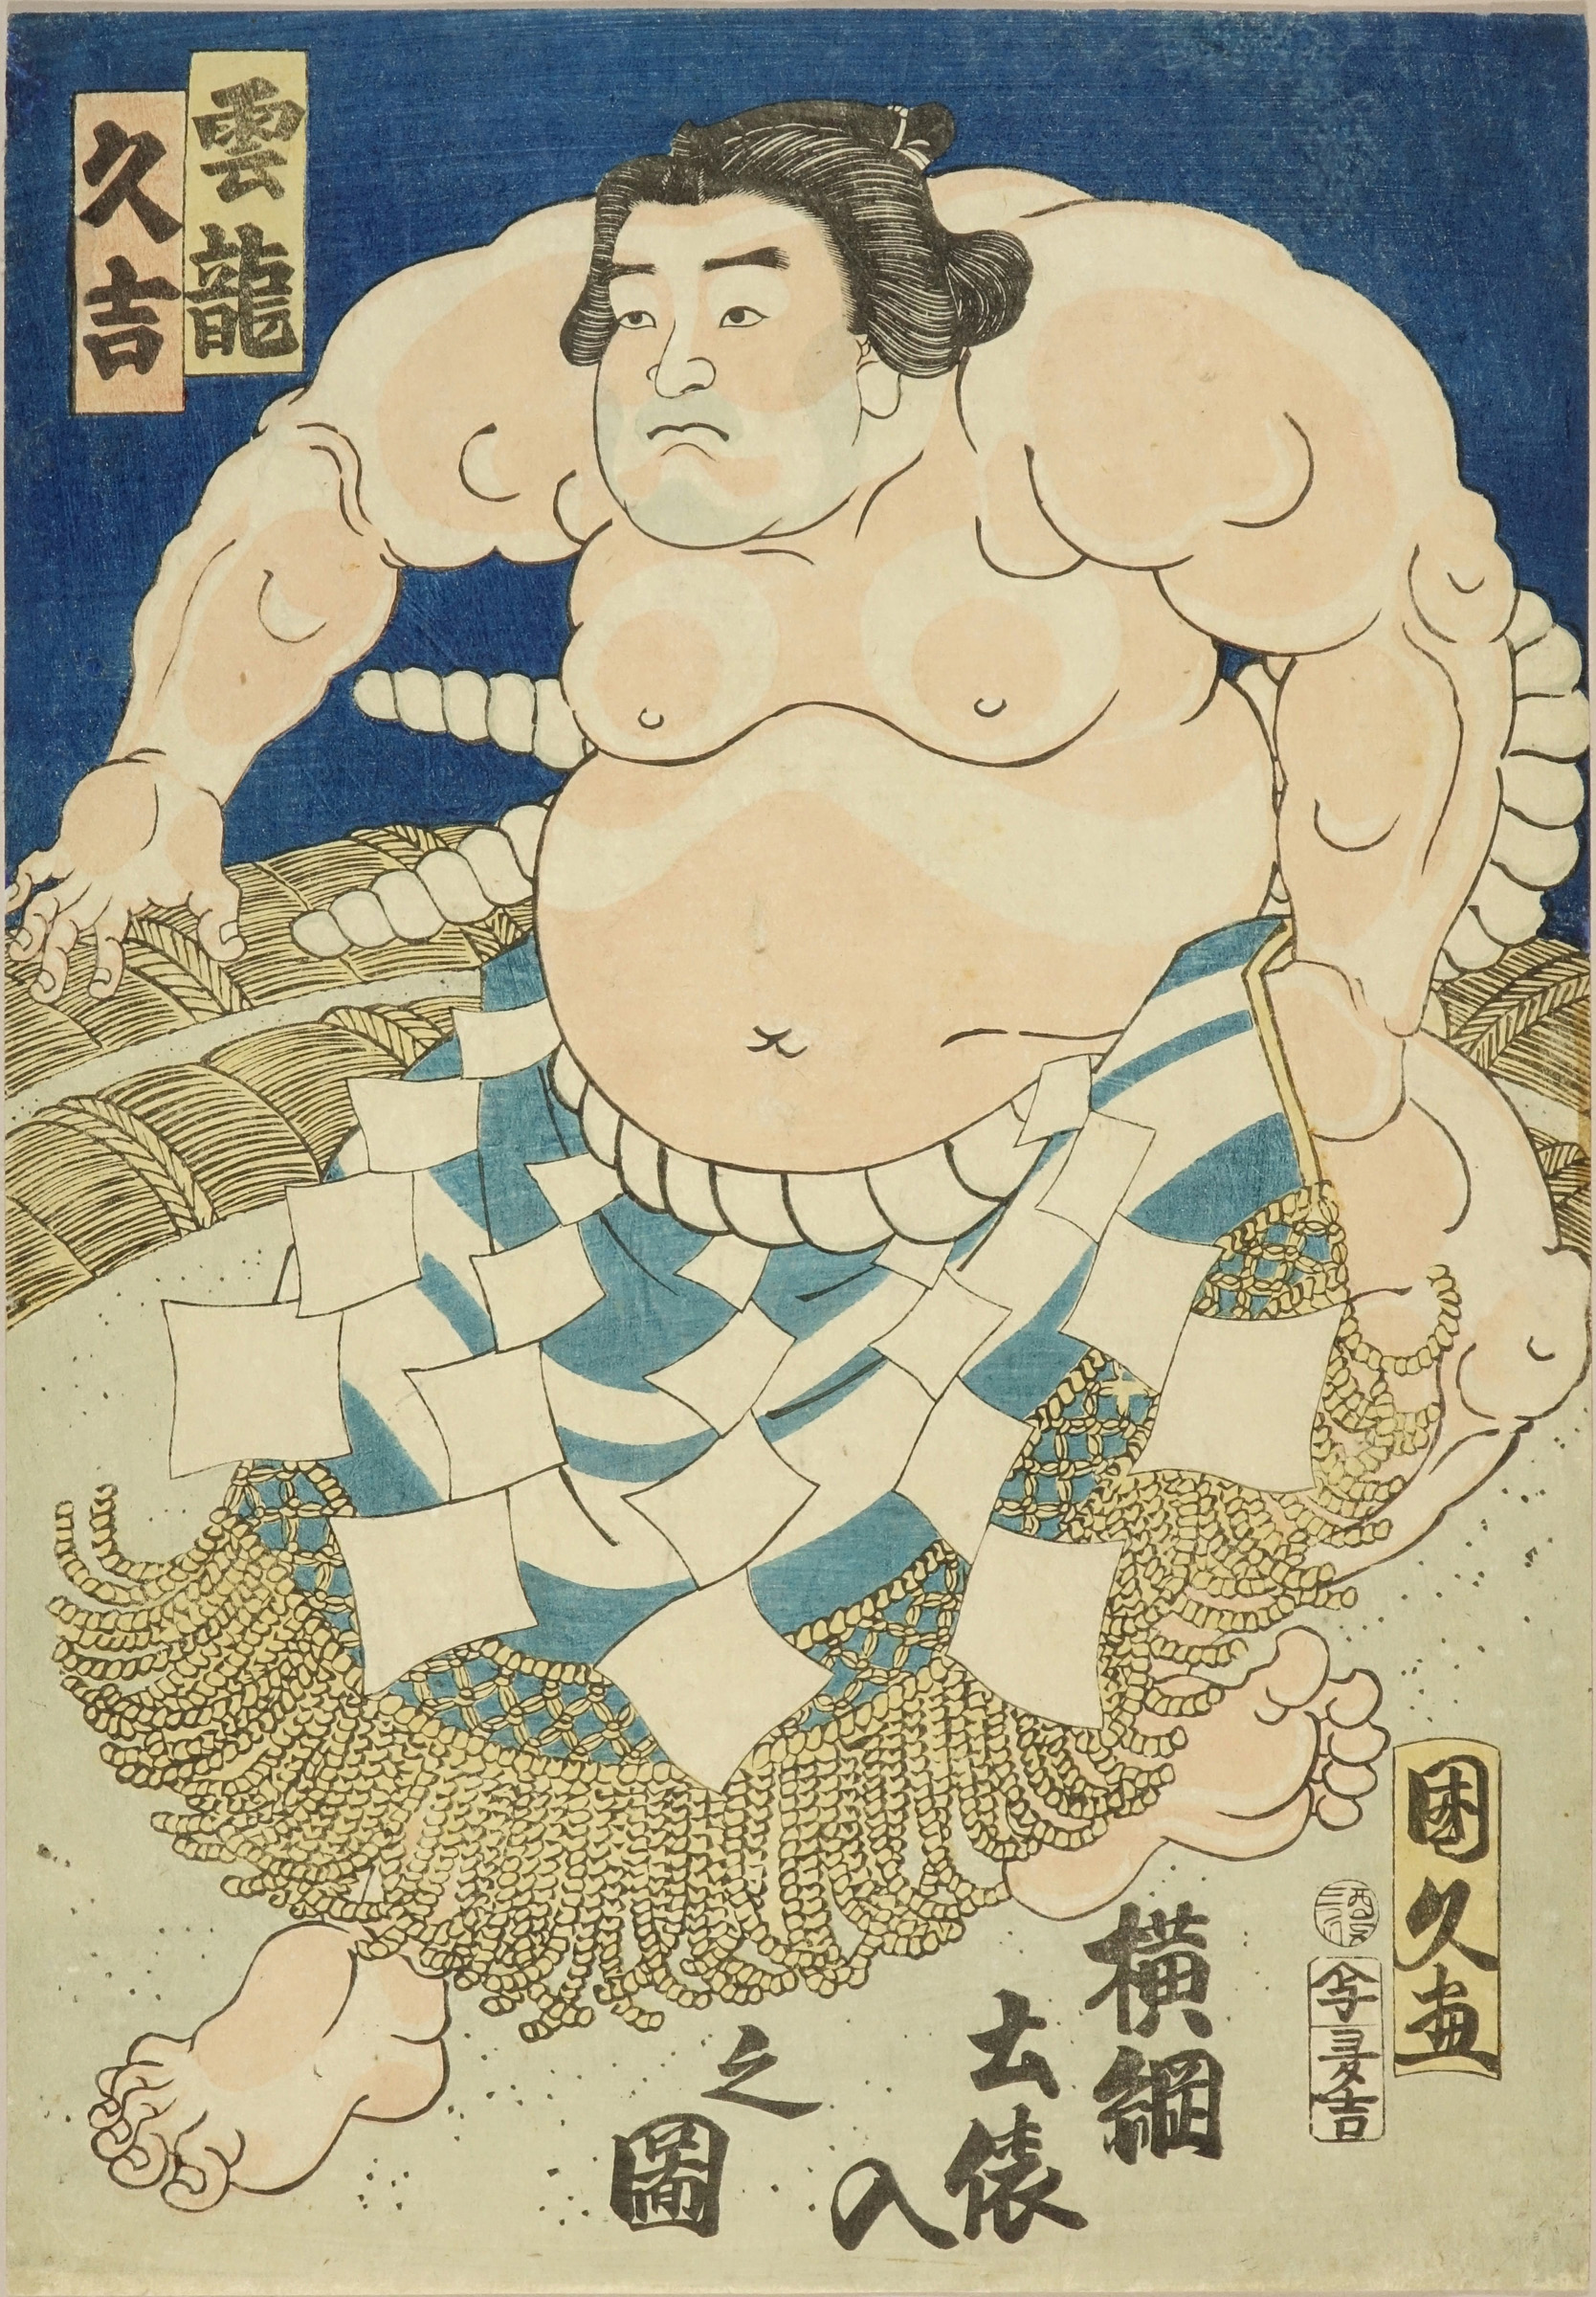 KUNIHISA Portrait of the <i>yokozuna</i> sumo wrestler Unryu Kyukichi (Fukuoka Pref.) entering the ring